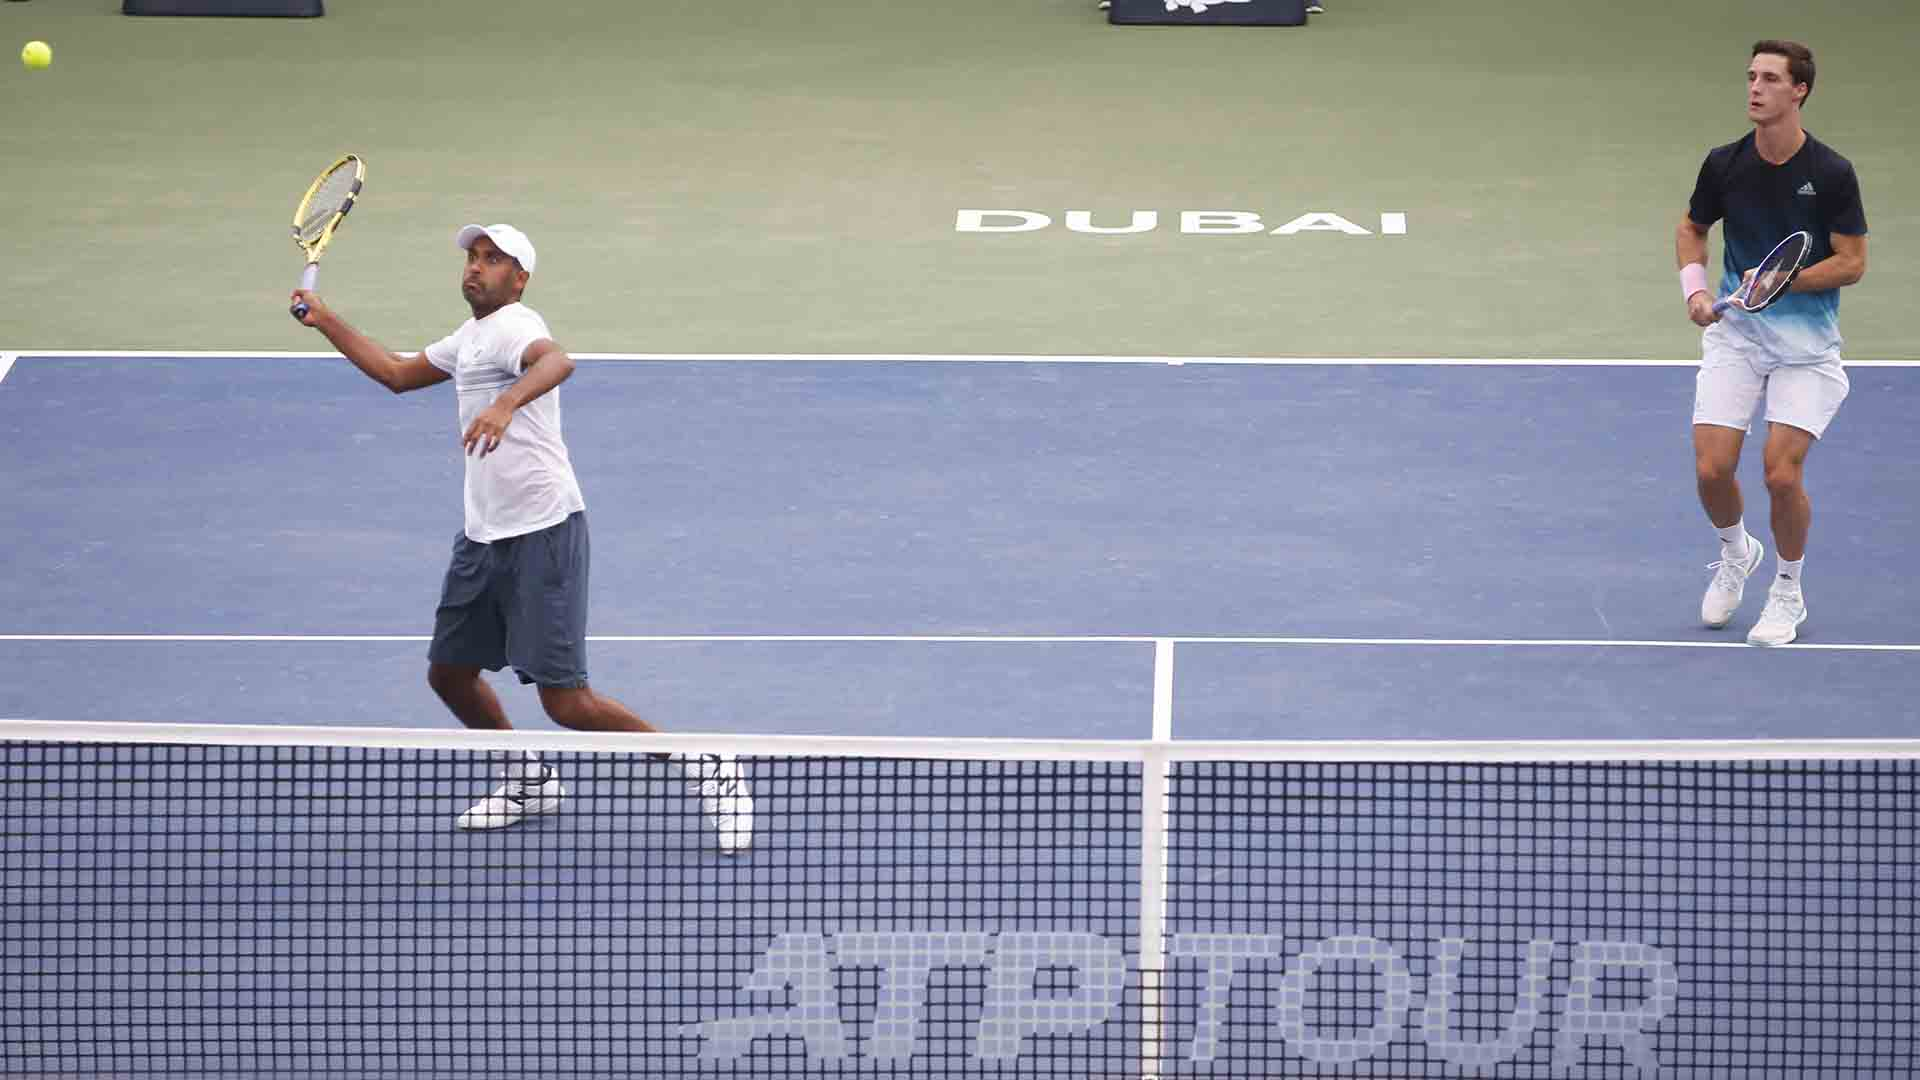 Rajeev Ram and Joe Salisbury reach their second tour-level final of the season.